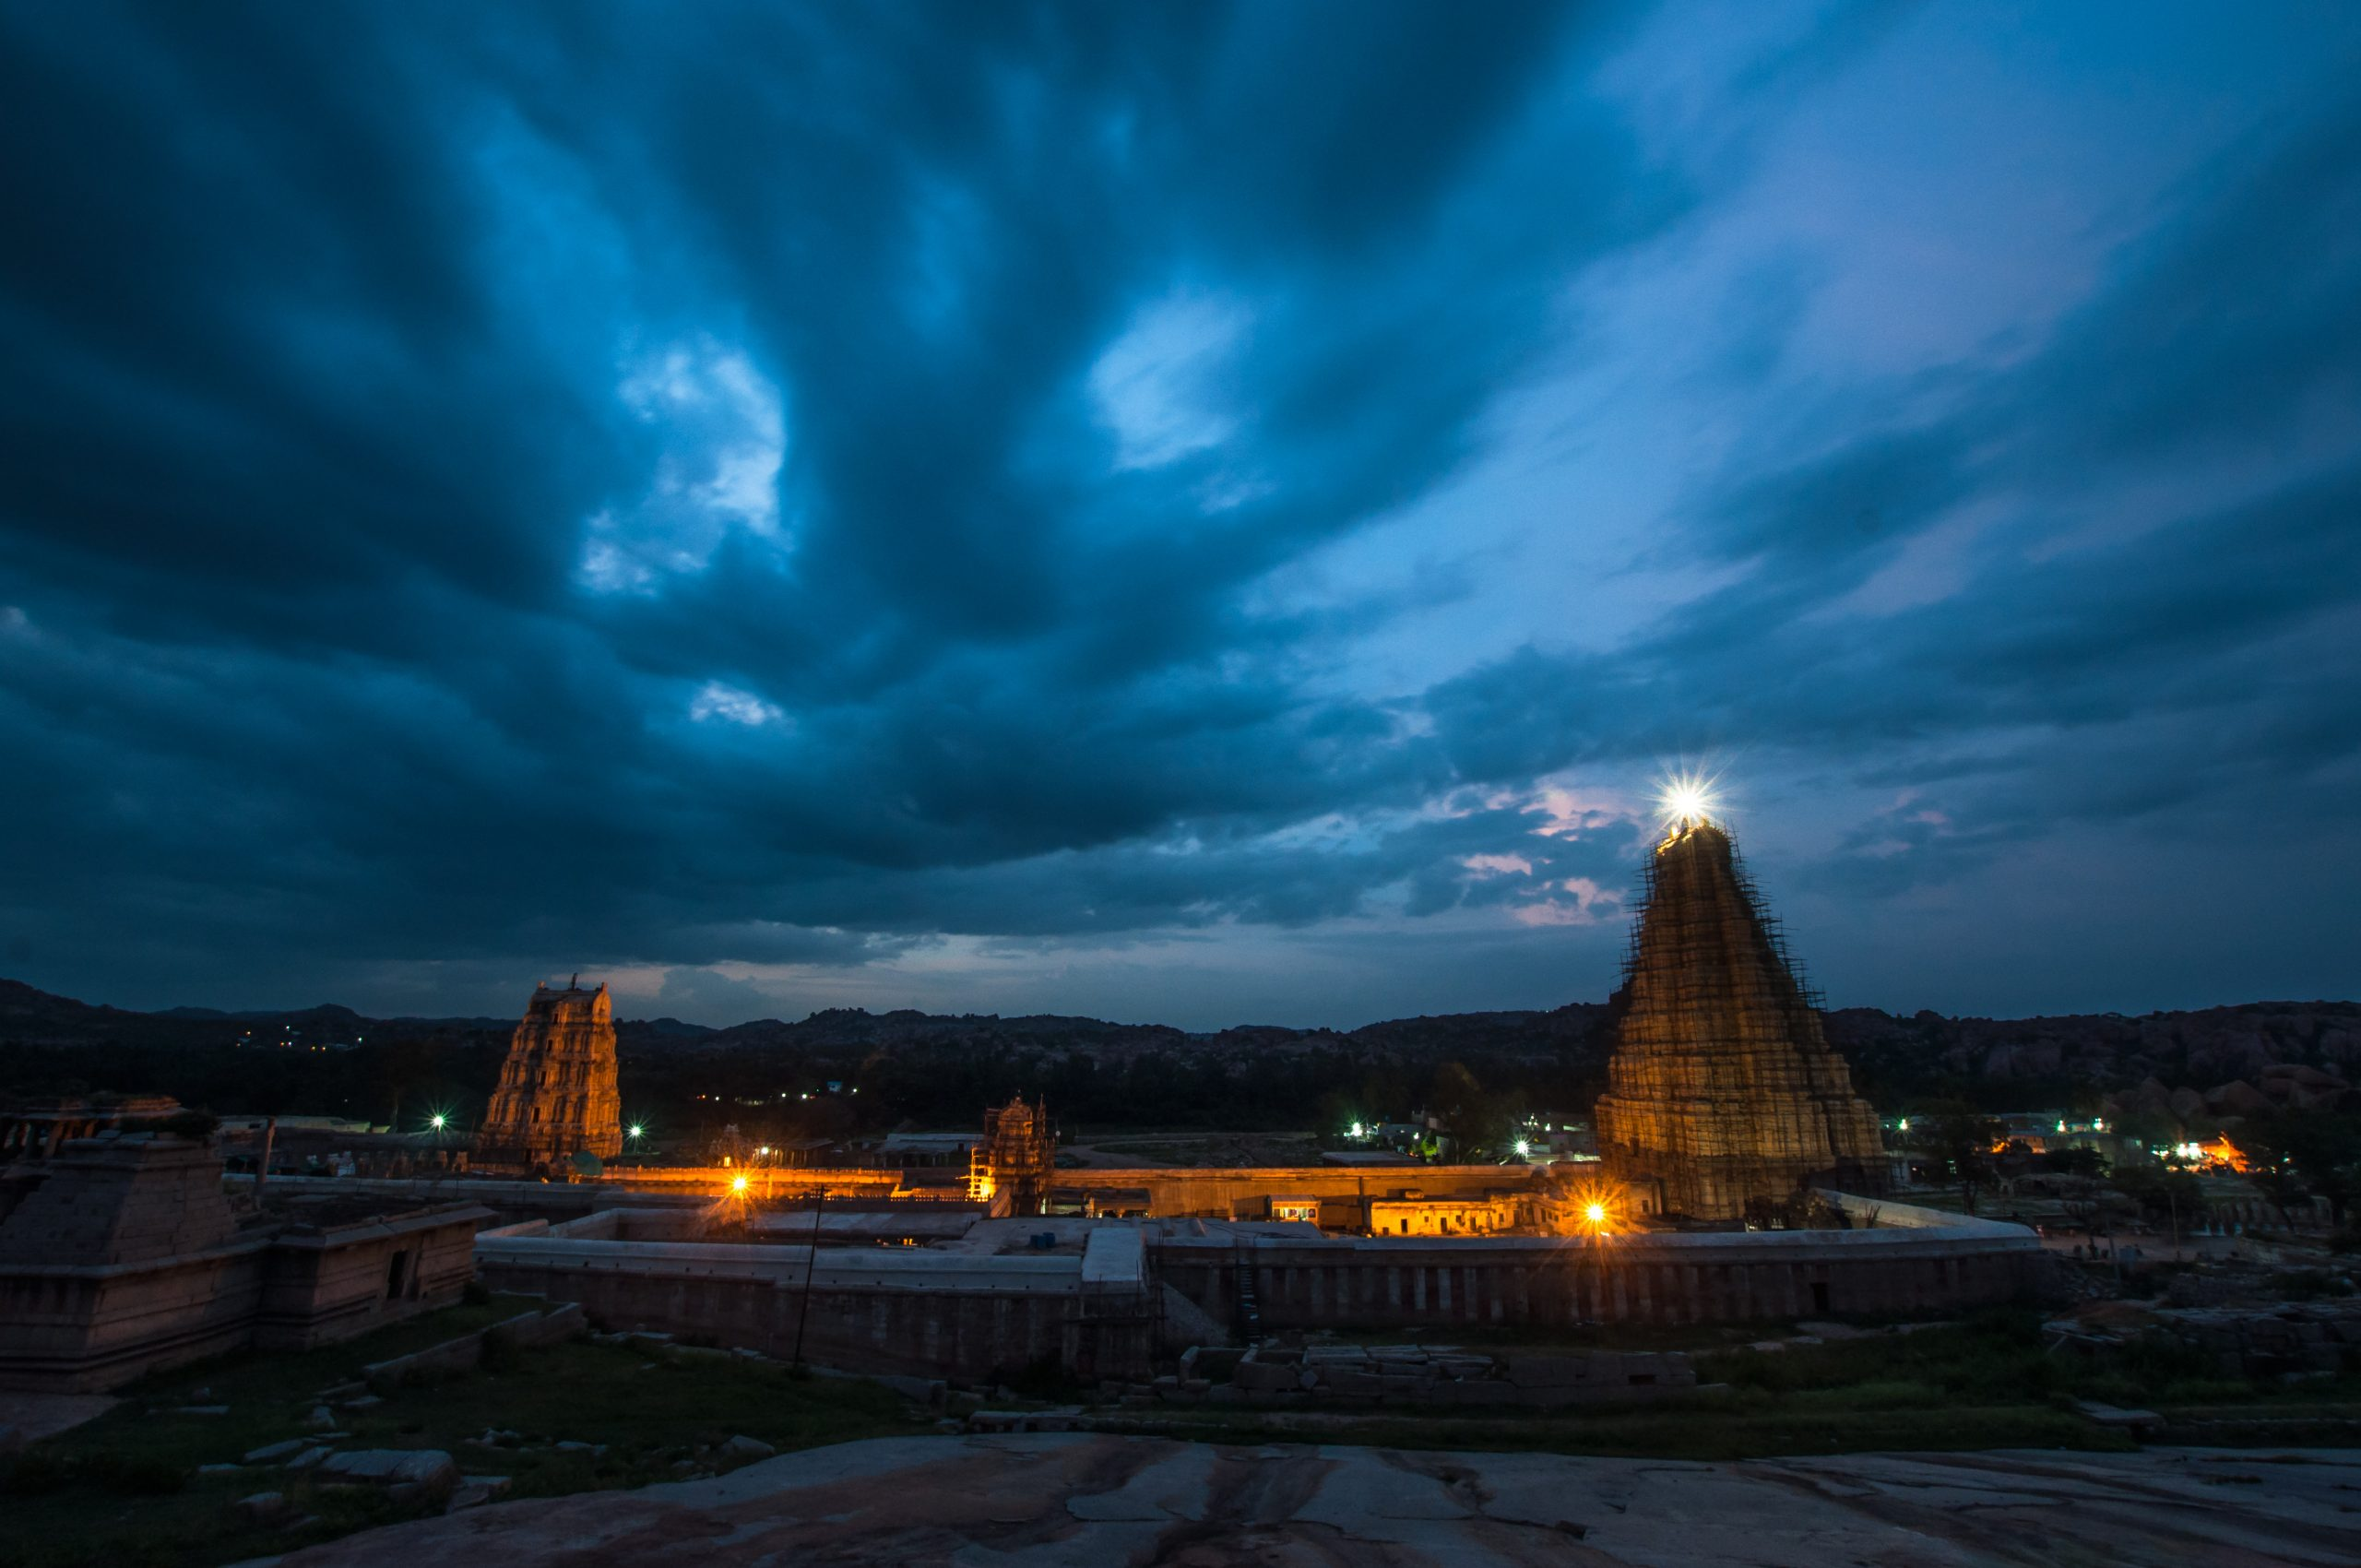 temple in the evening